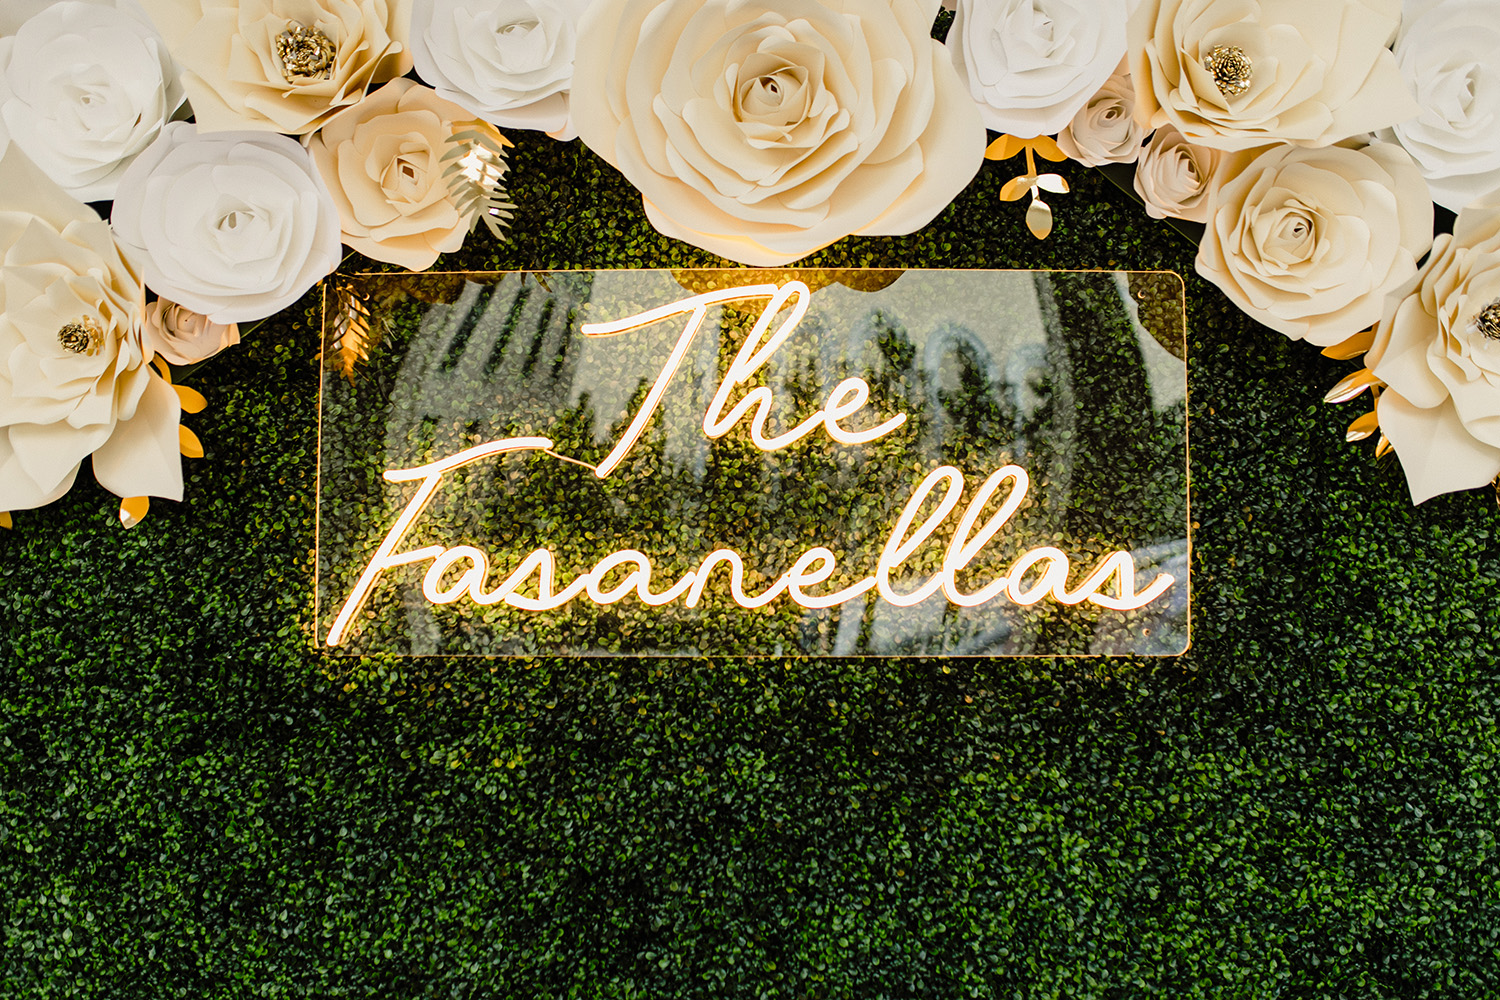 Nola Grace Decor's hedge wall photo opp with paper flowers and neon sign. Photo by Kristen Soileau.